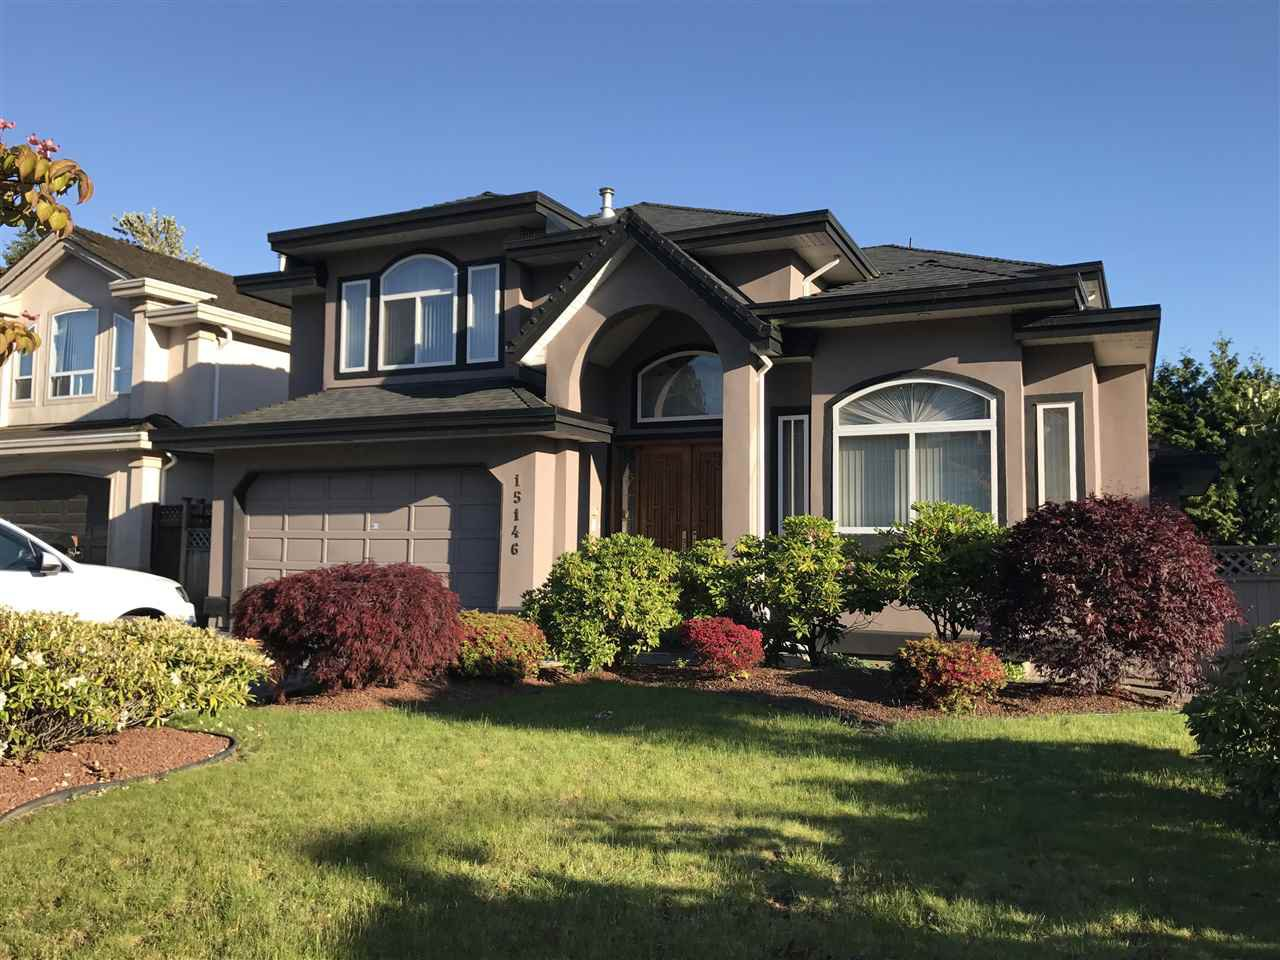 Main Photo: 15146 81A Avenue in Surrey: Bear Creek Green Timbers House for sale : MLS®# R2170293